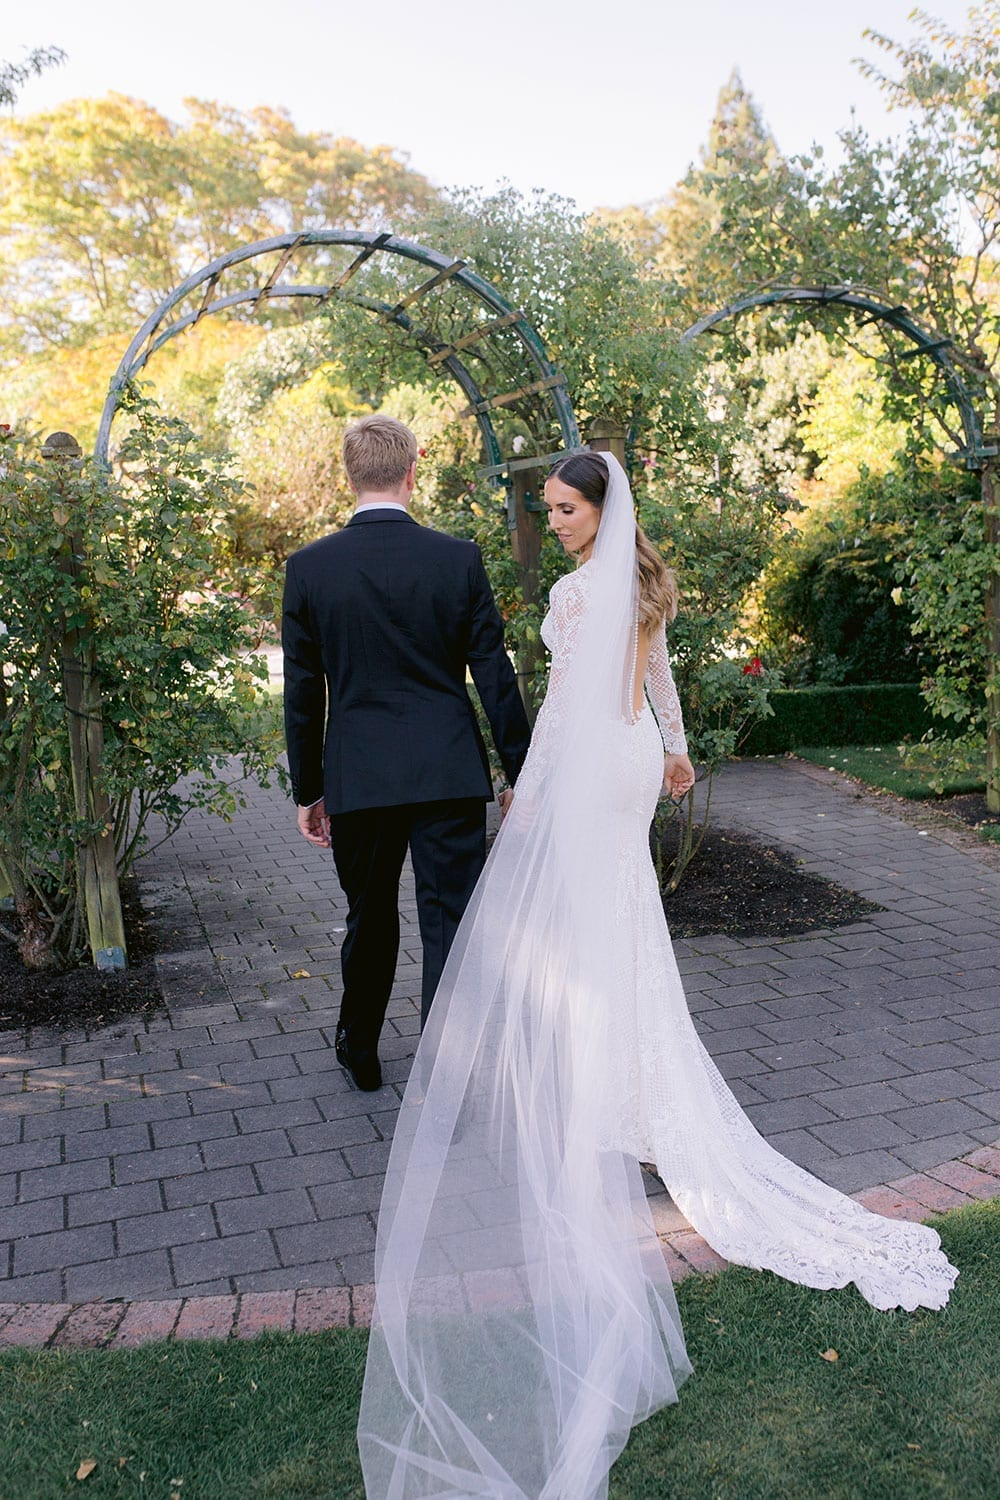 Vinka Design Features Real Weddings - Bride in bespoke fitted lace gown with deep v neck. Walking with groom, dress train and veil falling behind